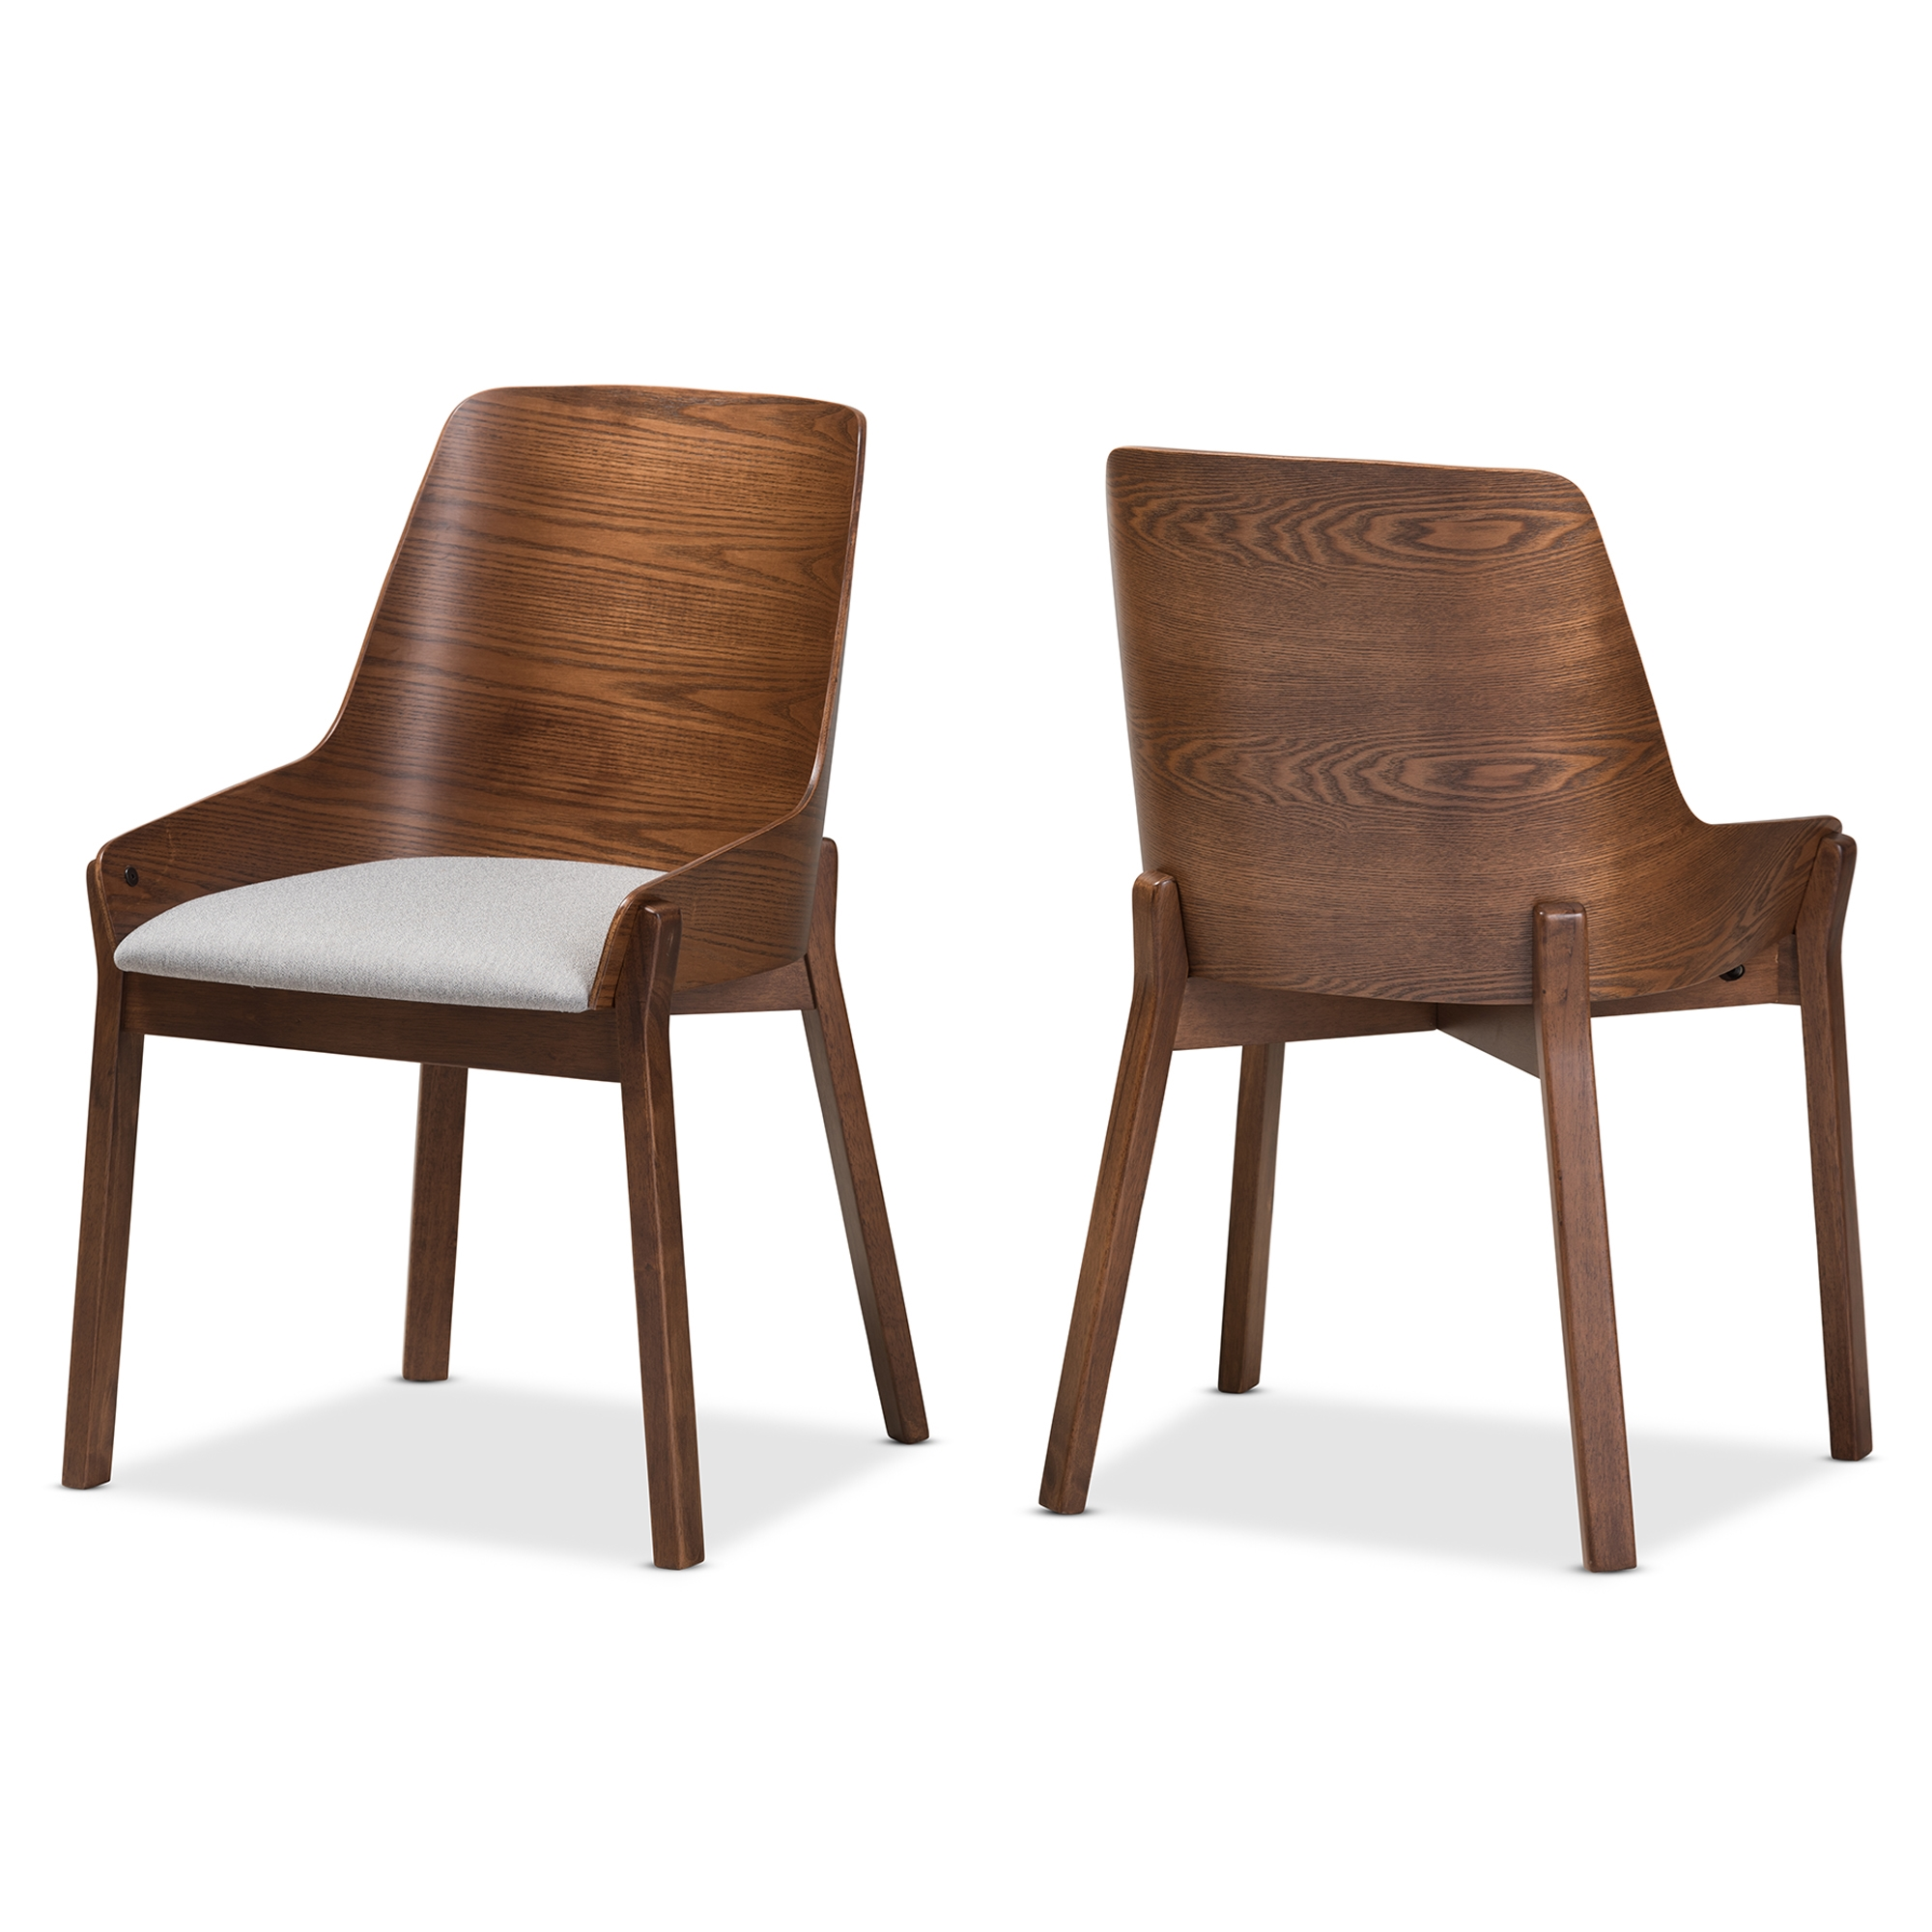 light wood dining chairs that make into beds baxton studio rye mid century modern walnut